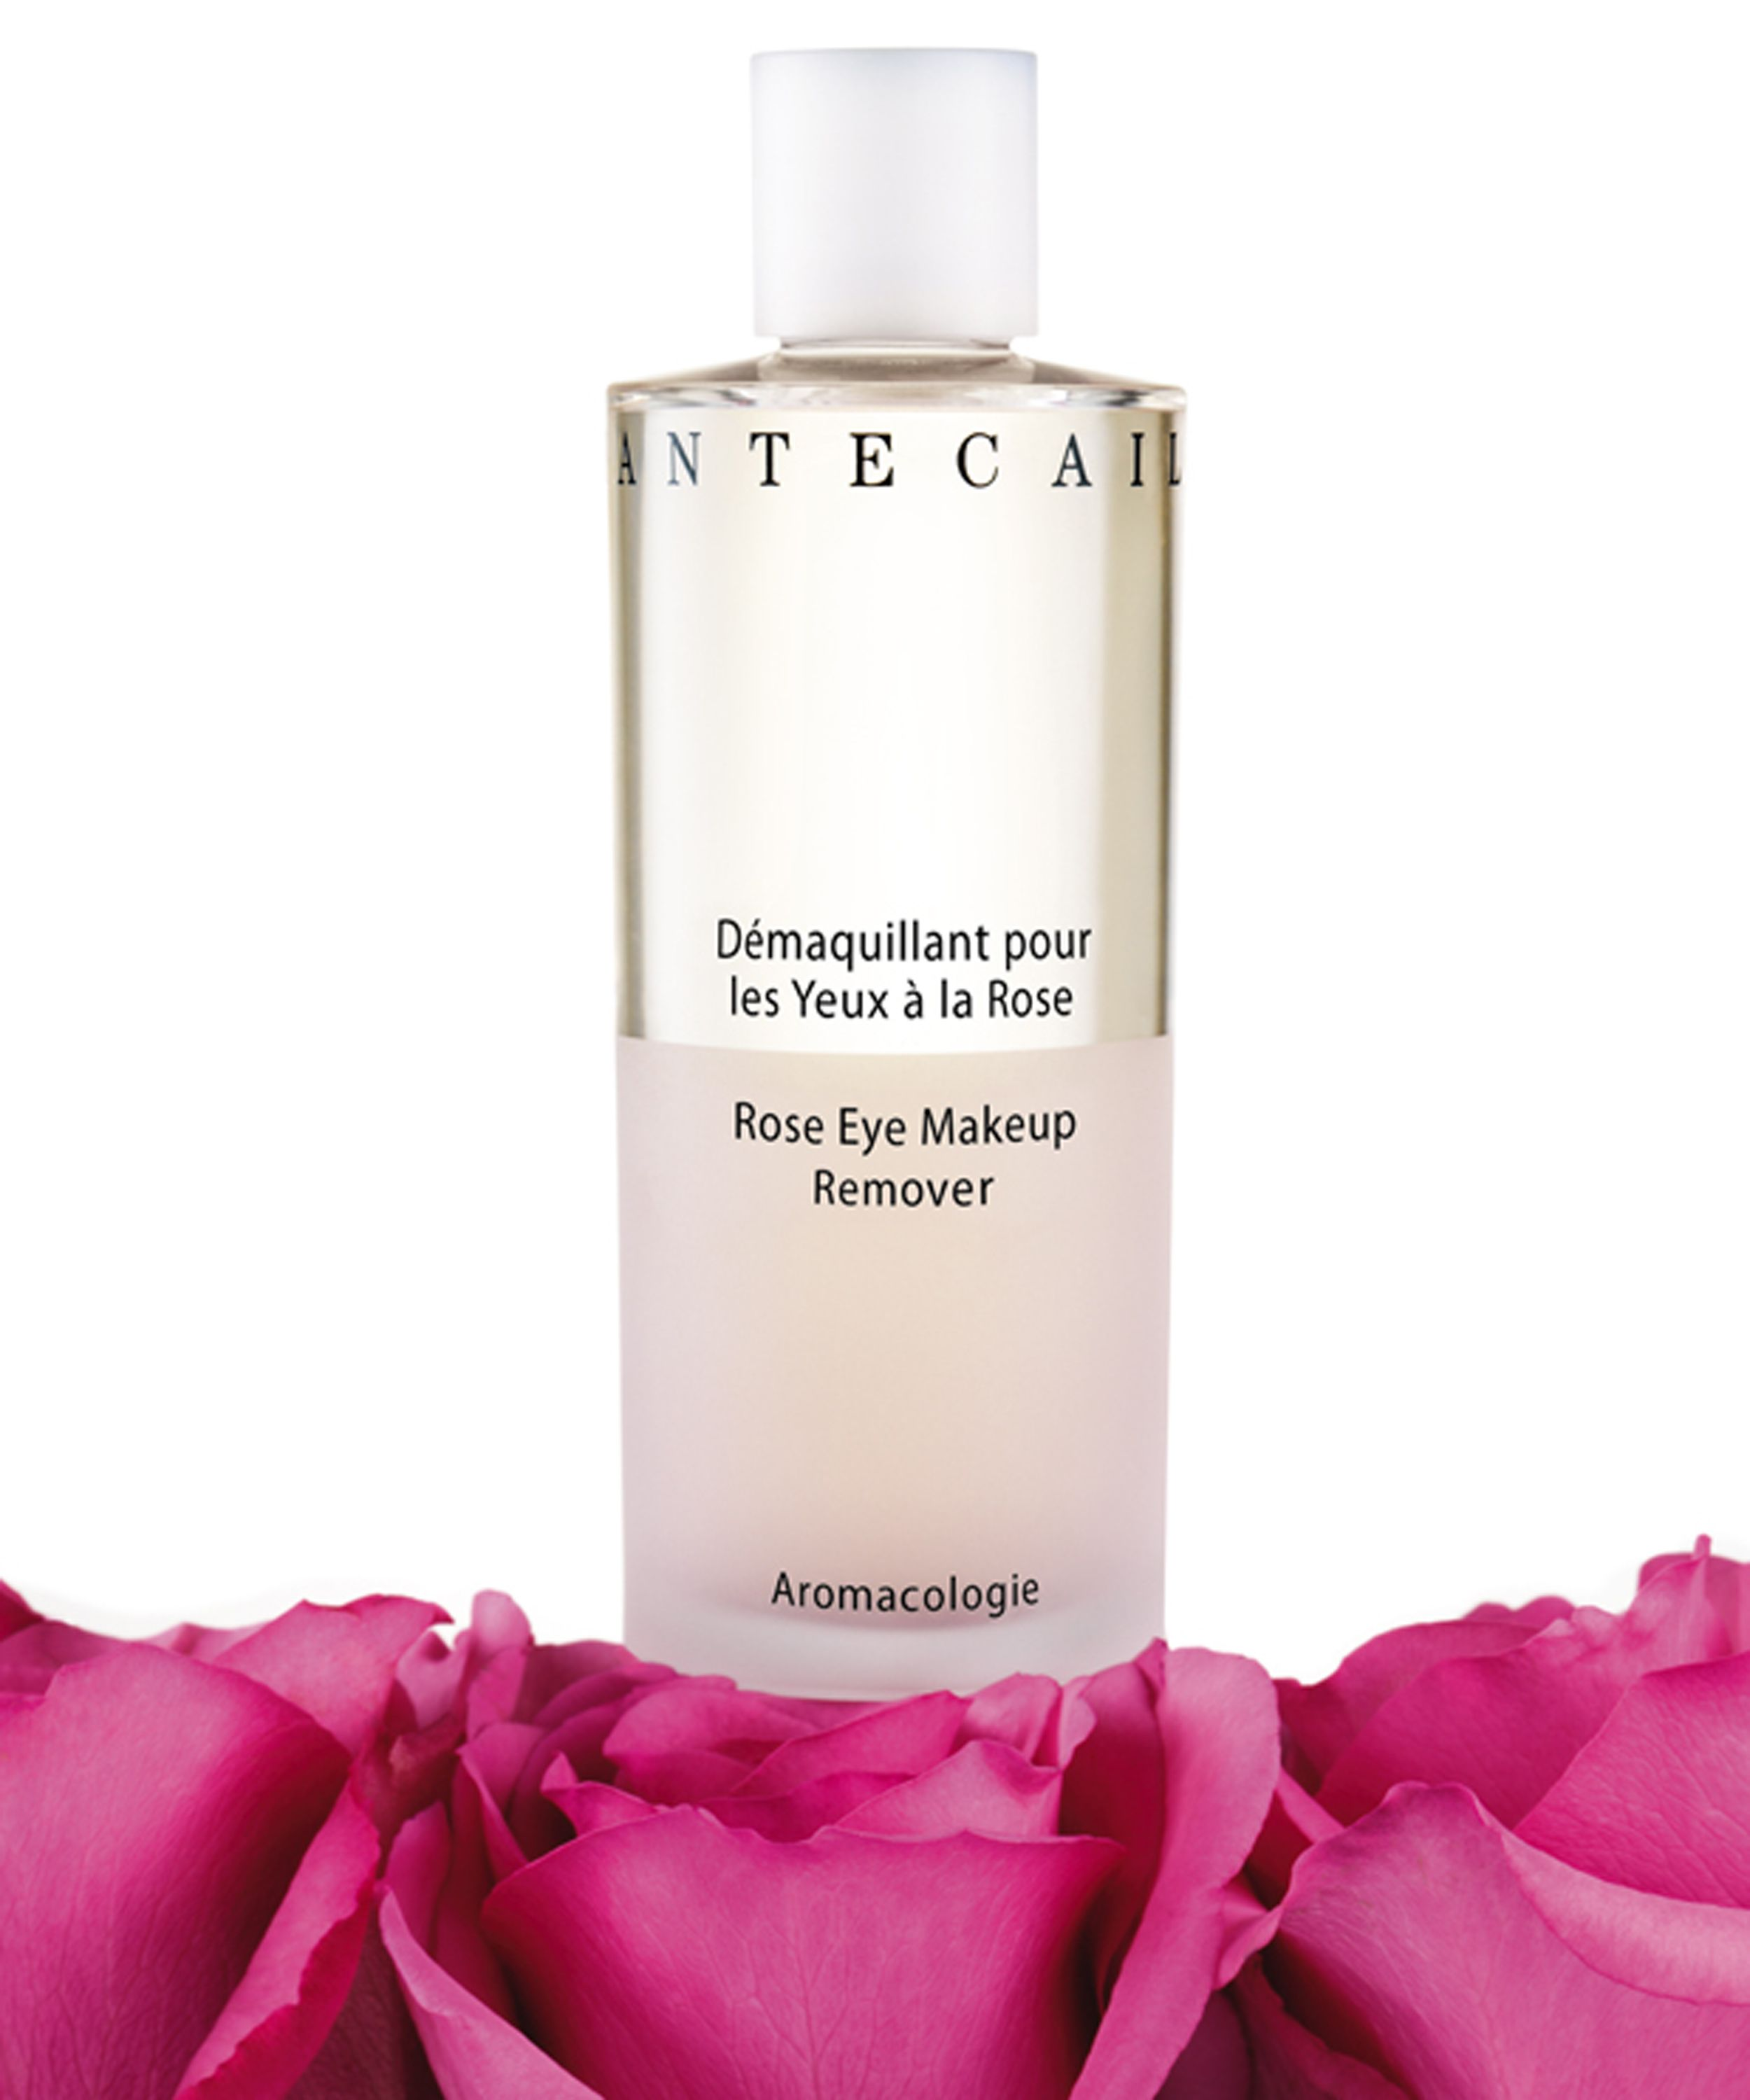 Pure rose water based eye make-up remover that gently dissolves all types of make-up and soothes and brightens the eye area. Featuring apricot extract to regenerate skin and aloe vera to heal inflammation and reduce redness caused by irritation #Chantecaille #LibertyBeauty